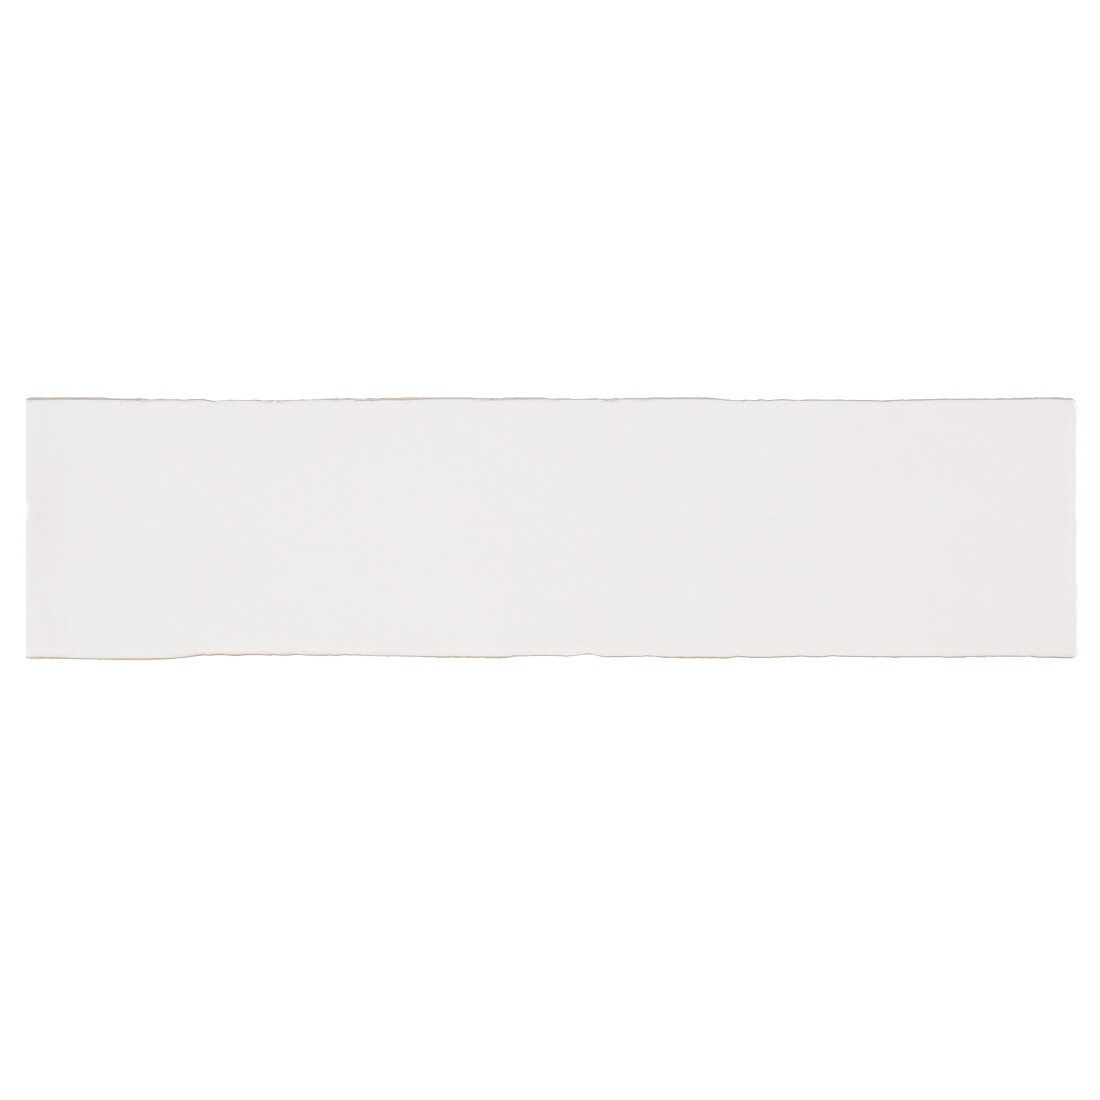 South Hampton White Matt Handmade Look Subway 300 x 75 mm